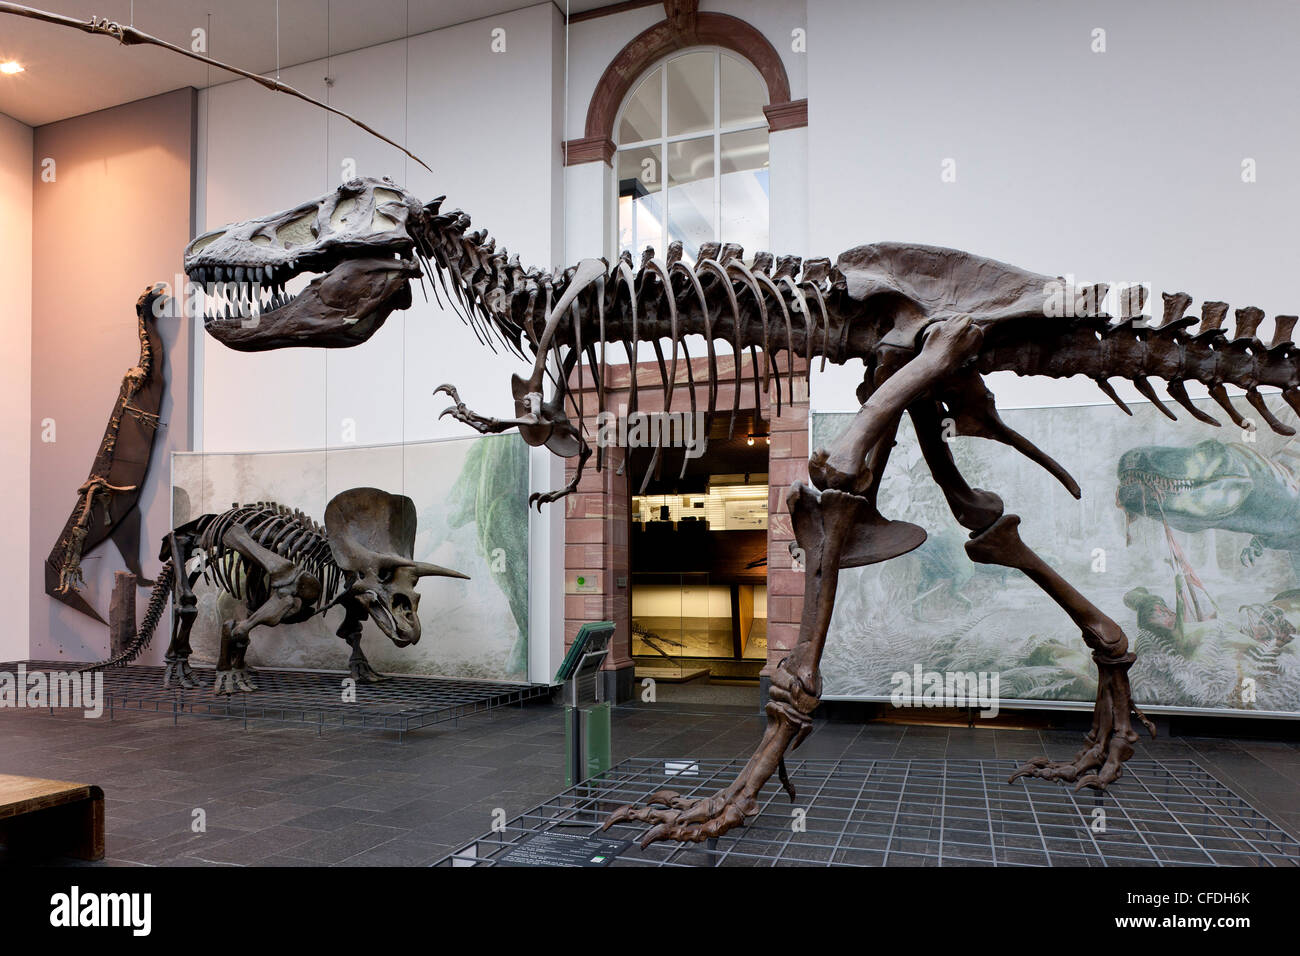 Senckenberg-Museum, view of into the the dinosaur hall, Frankfurt am Main, Hesse, Germany, Europe - Stock Image